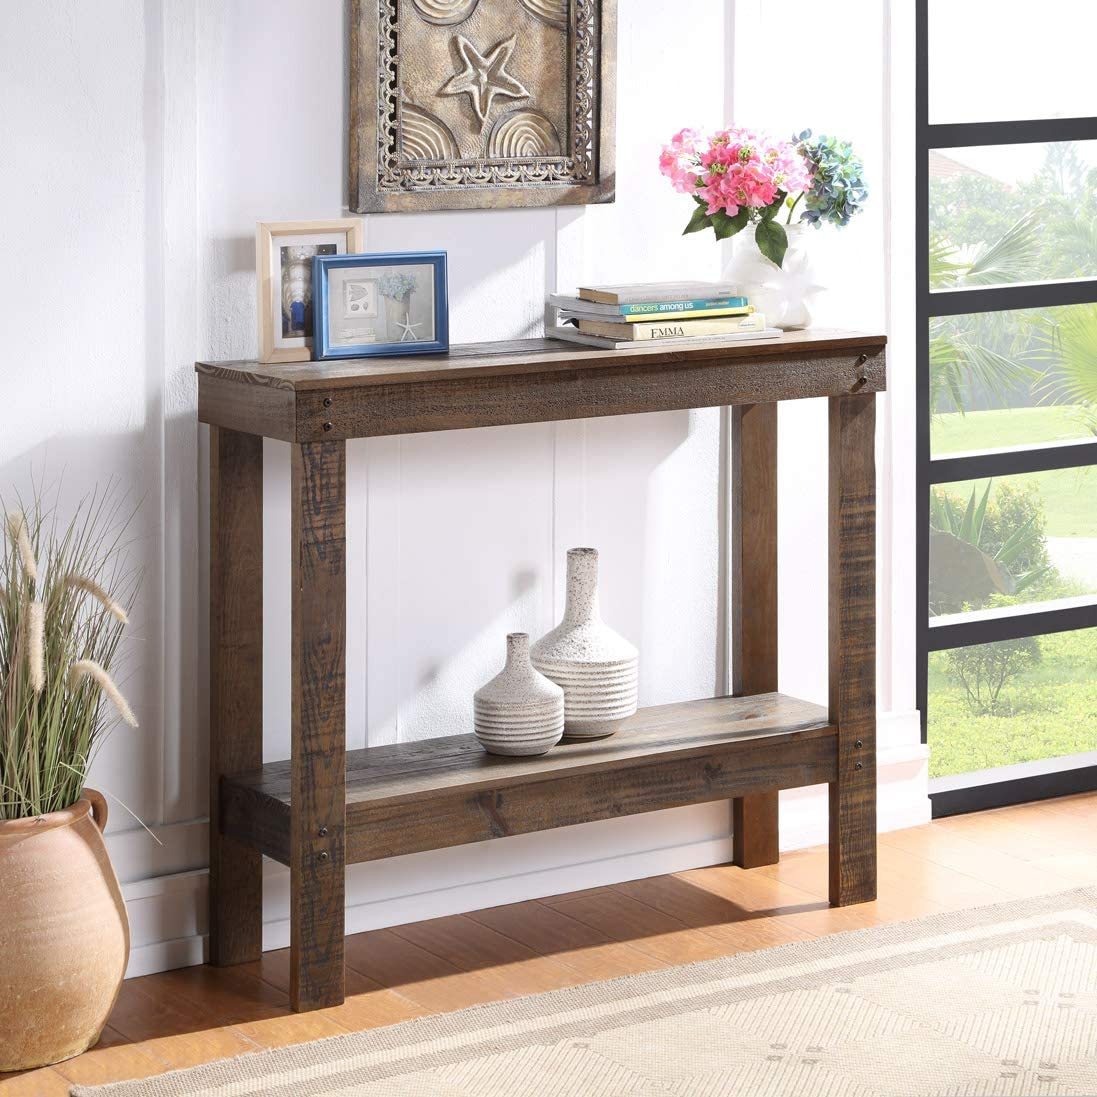 Console Table 2 Tier for Entryway, Farmhouse Rustic Entryway Table Narrow Long with Bottom Shelf for Hallway Foyer Living Room, 2 Shelf, Solid Wood, Dark Brown